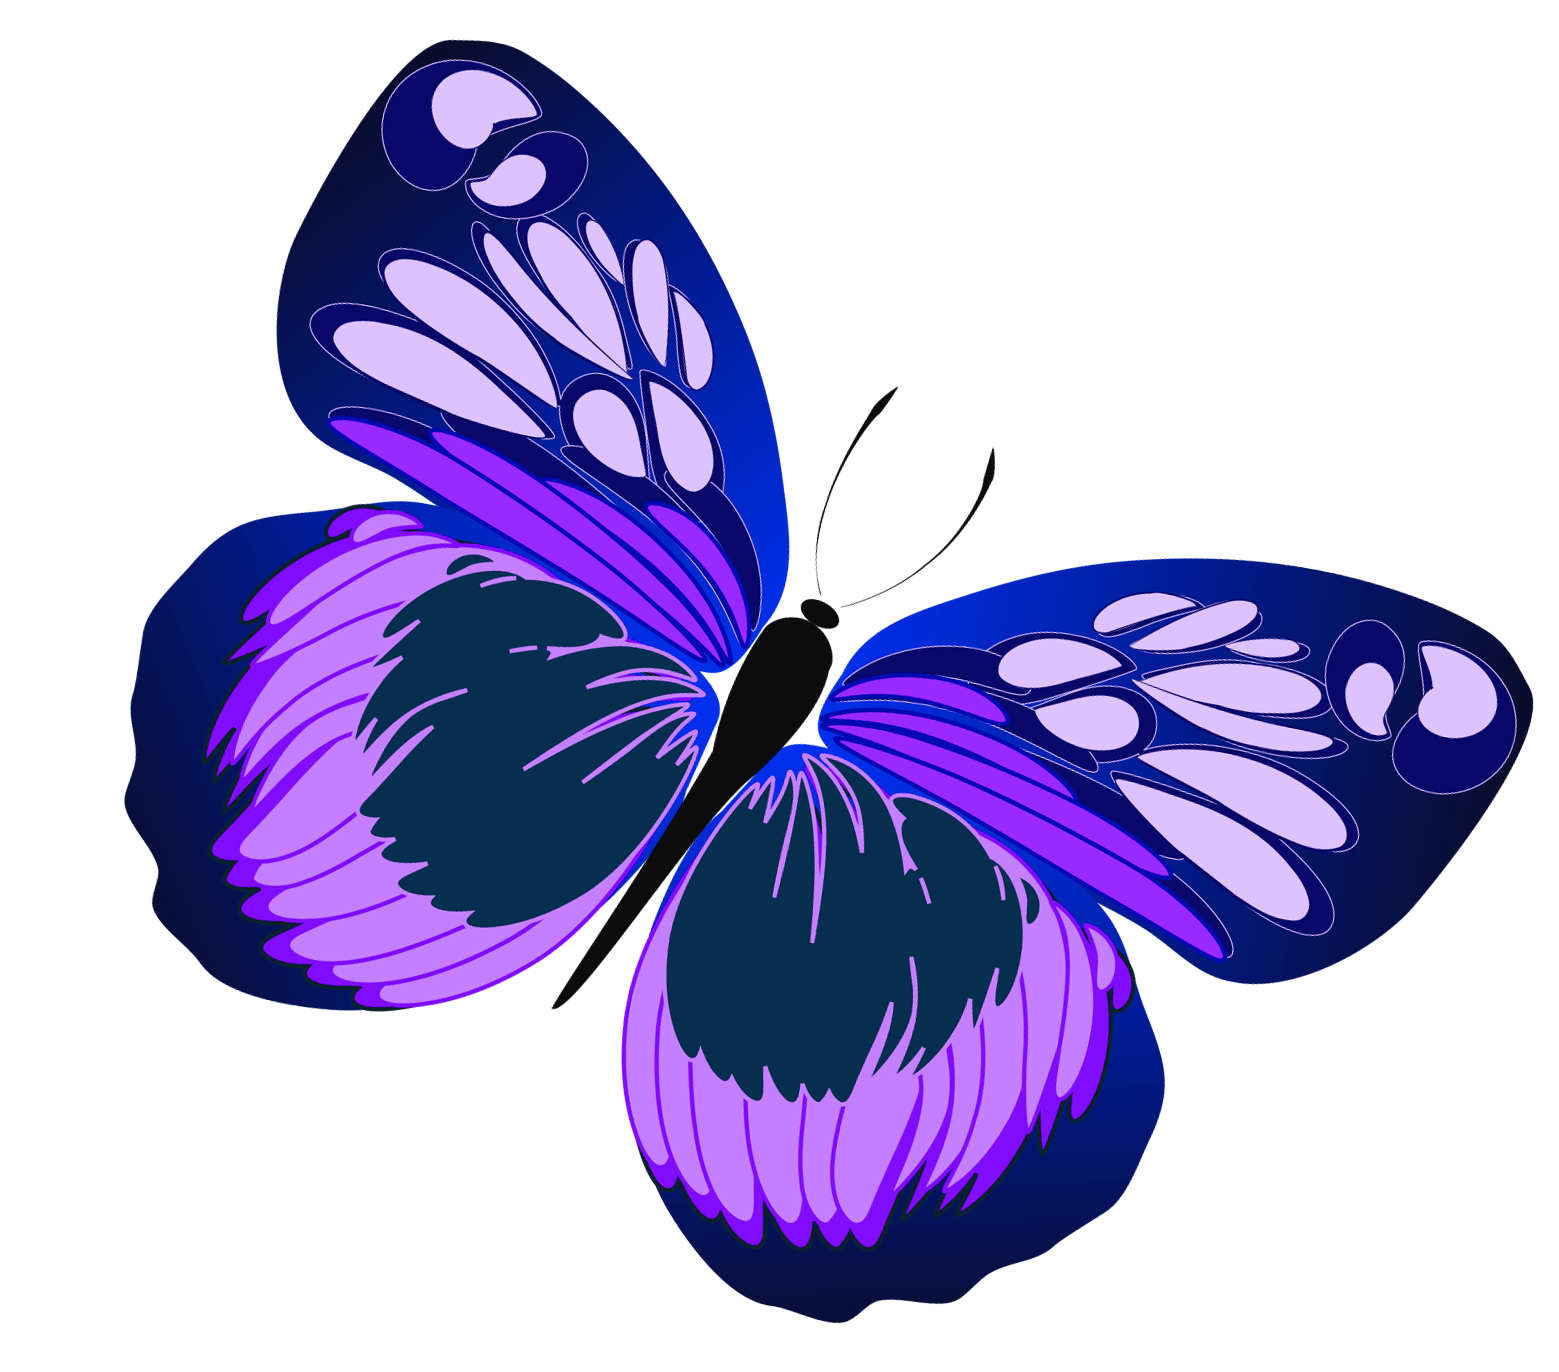 Free butterfly pictures clipart jpg transparent download Free Butterfly Clipart | Free download best Free Butterfly Clipart ... jpg transparent download